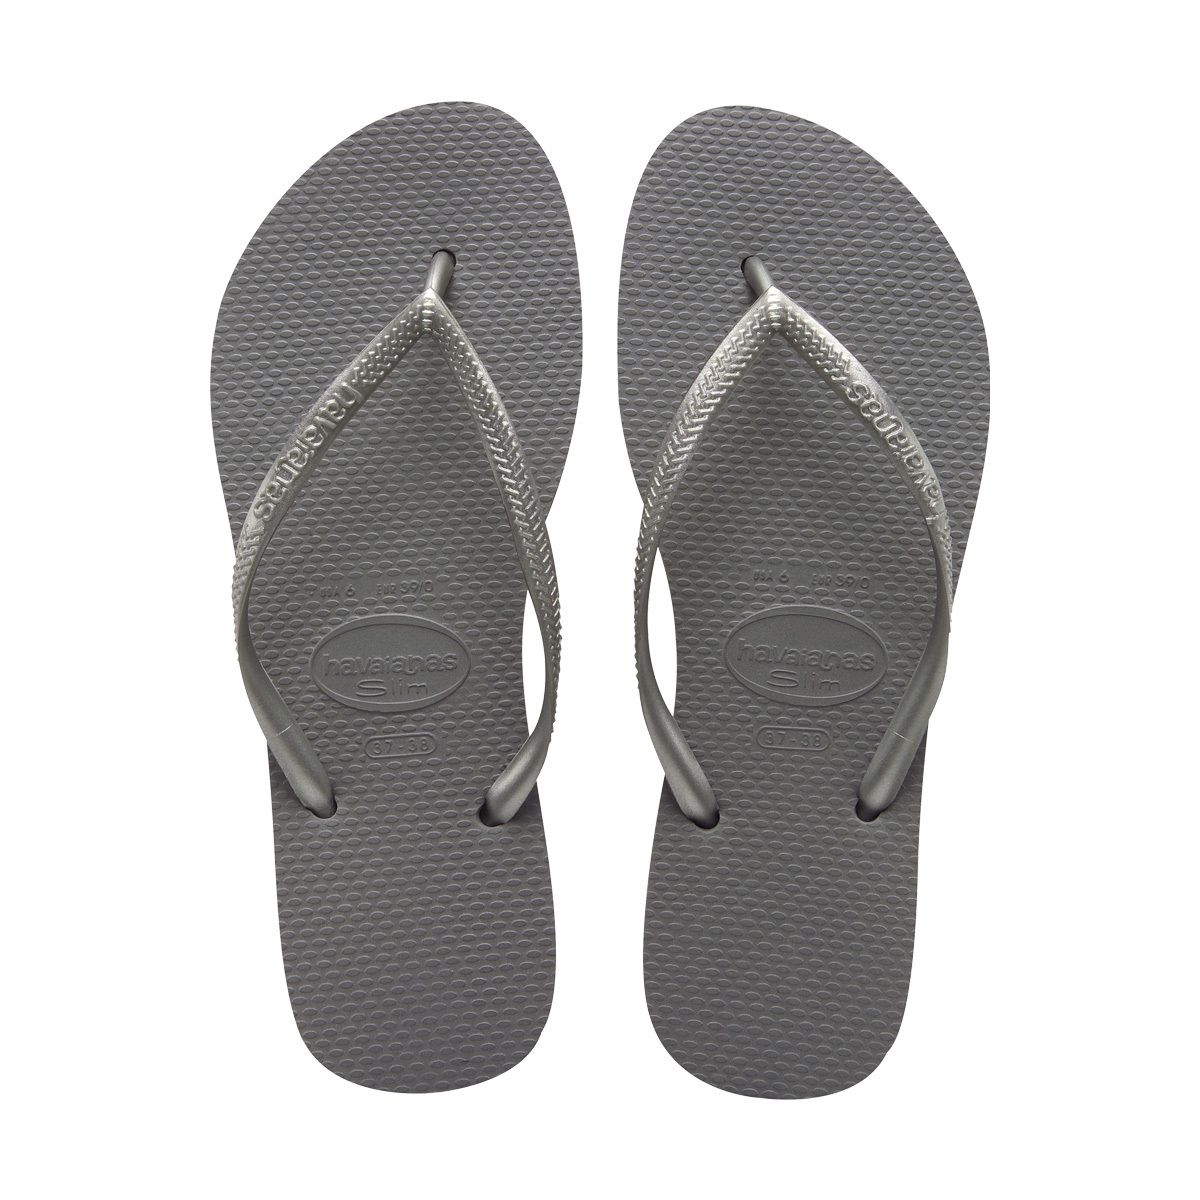 ff8b158d2 37 38 - Steel Grey - Women s Slim Thong Flip Flop Steel Grey ...